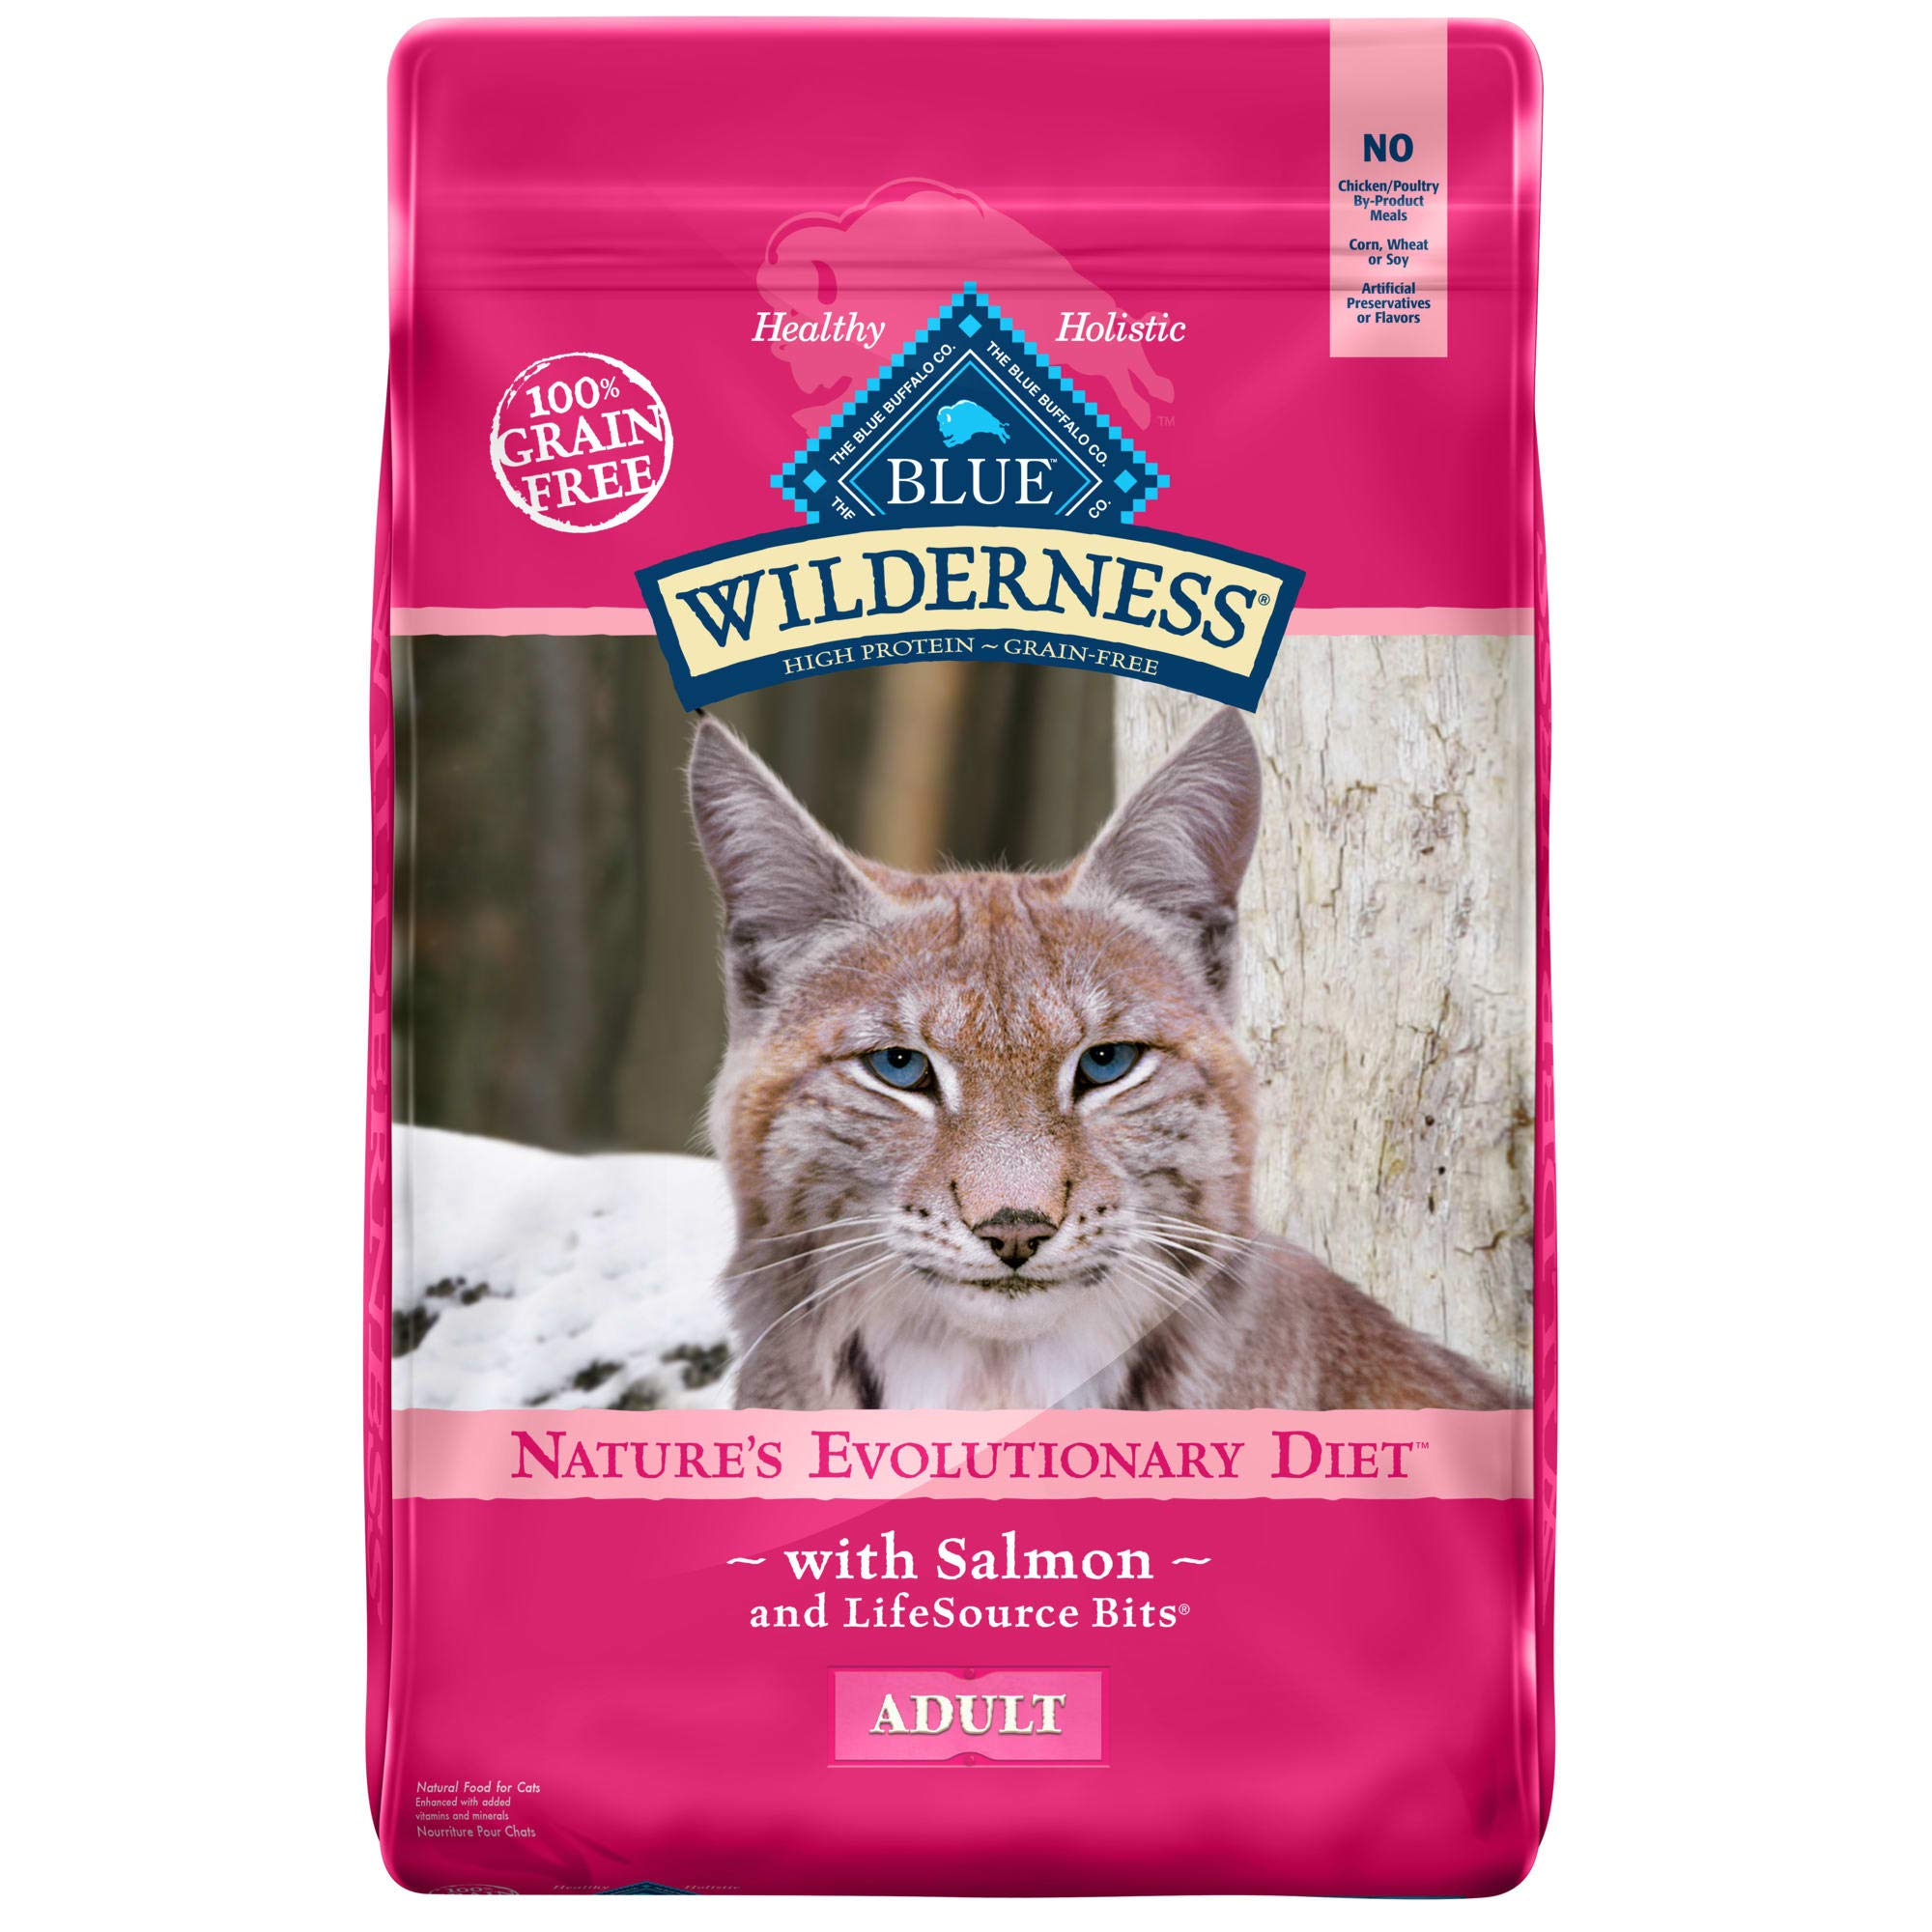 Blue Buffalo Wilderness High Protein Grain Free, Natural Adult Dry Cat Food, Salmon